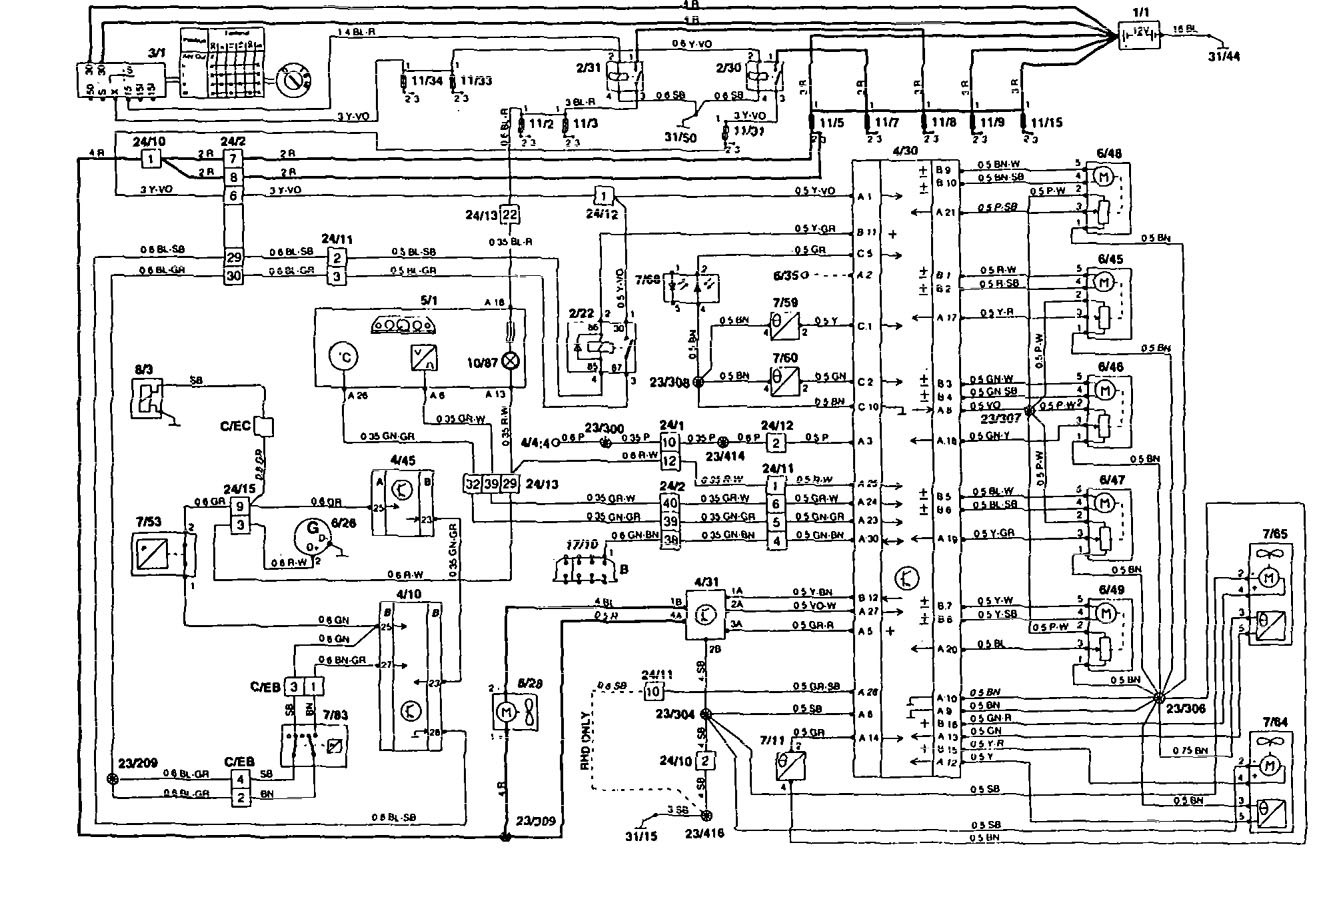 ZU5x 16701 as well Fuse Box 1987 Toyota Truck Find Graphic Diagram likewise 88ne9 Looking Wiring Diagram Ford L8000 1995 Cummins further 1999 Ford F250 Hd And F350 Super Dutty Blower Motor Wiring Diagram Throughout further P 0996b43f80c90ecc. on volvo truck wiring diagrams